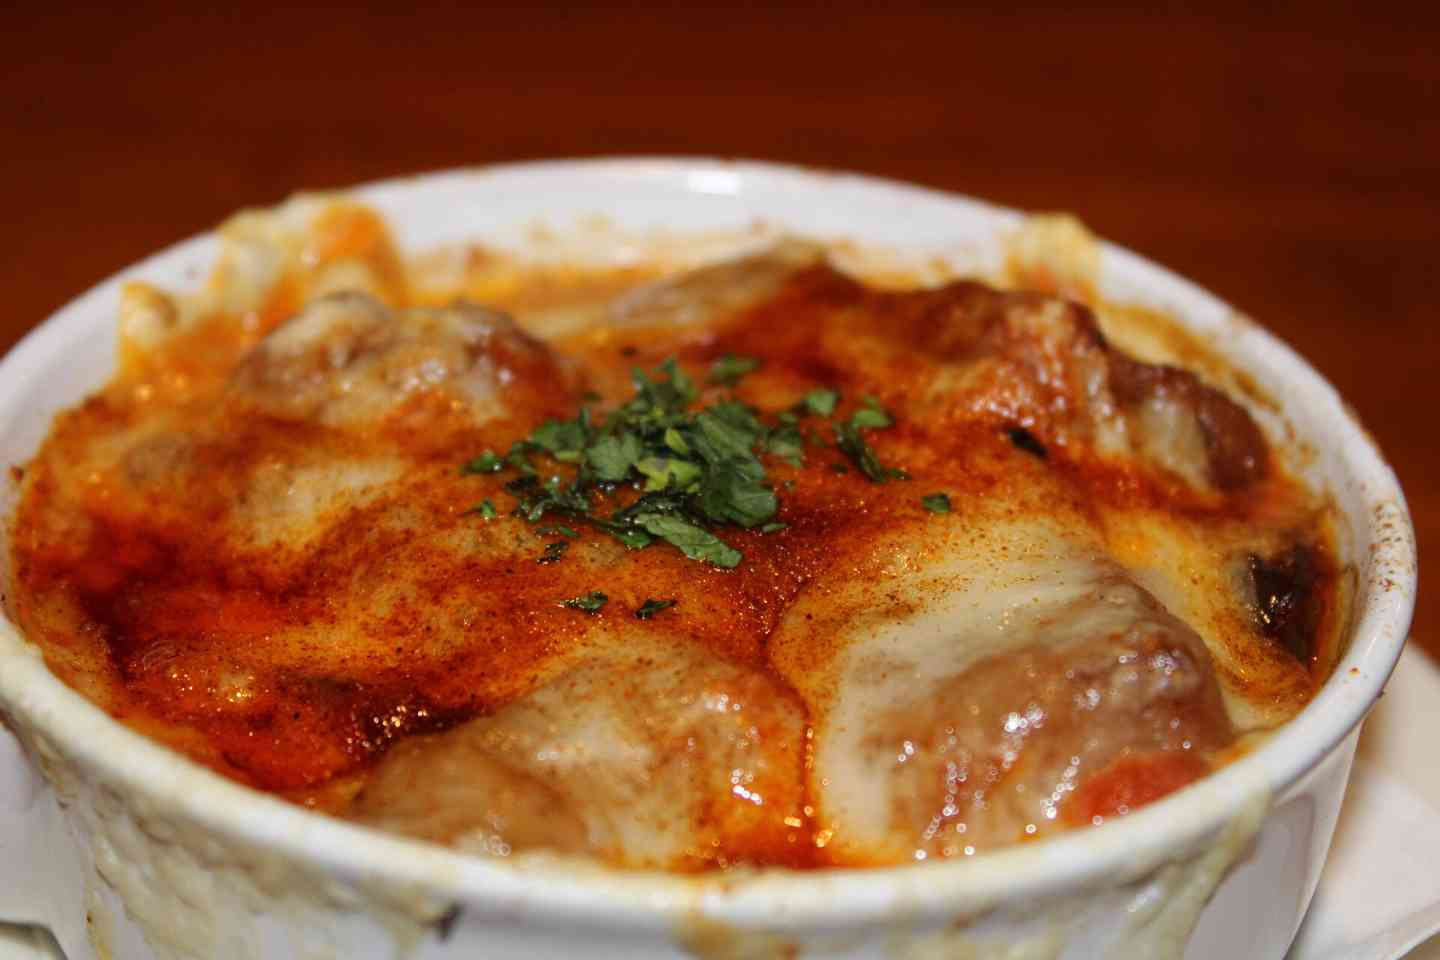 Homemade Baked Onion Soup